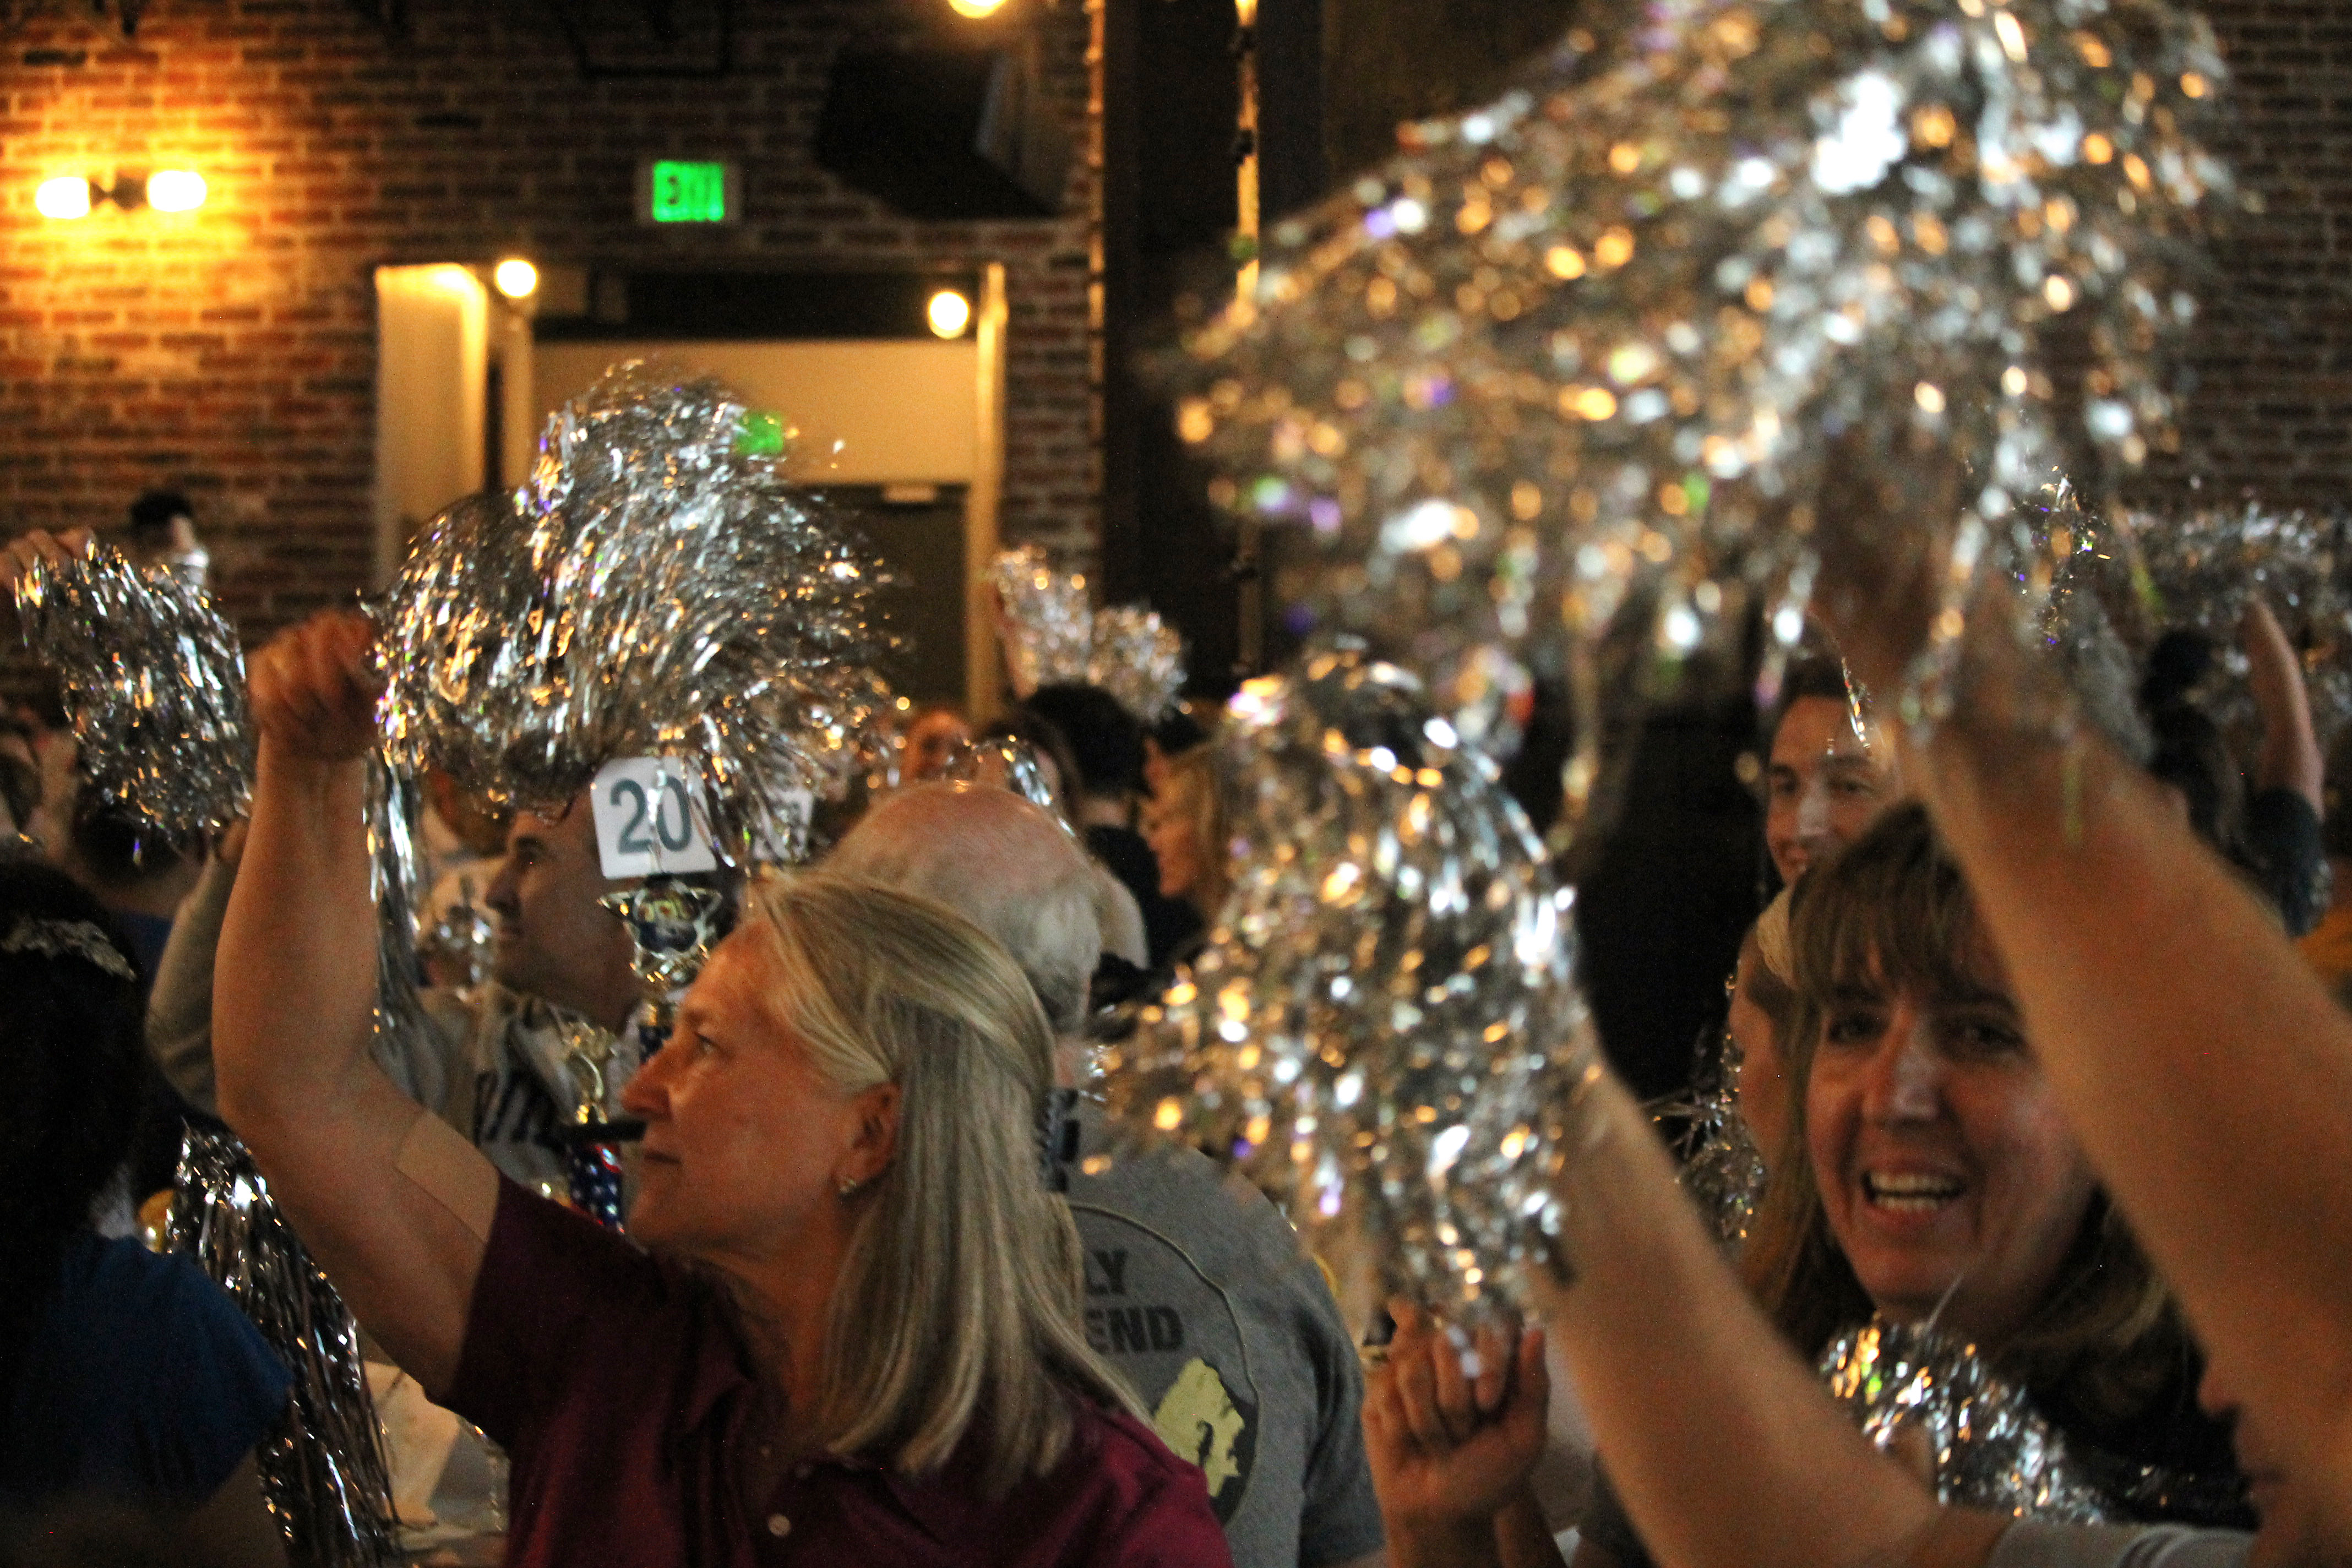 Room full of people wave silver pom poms in the air